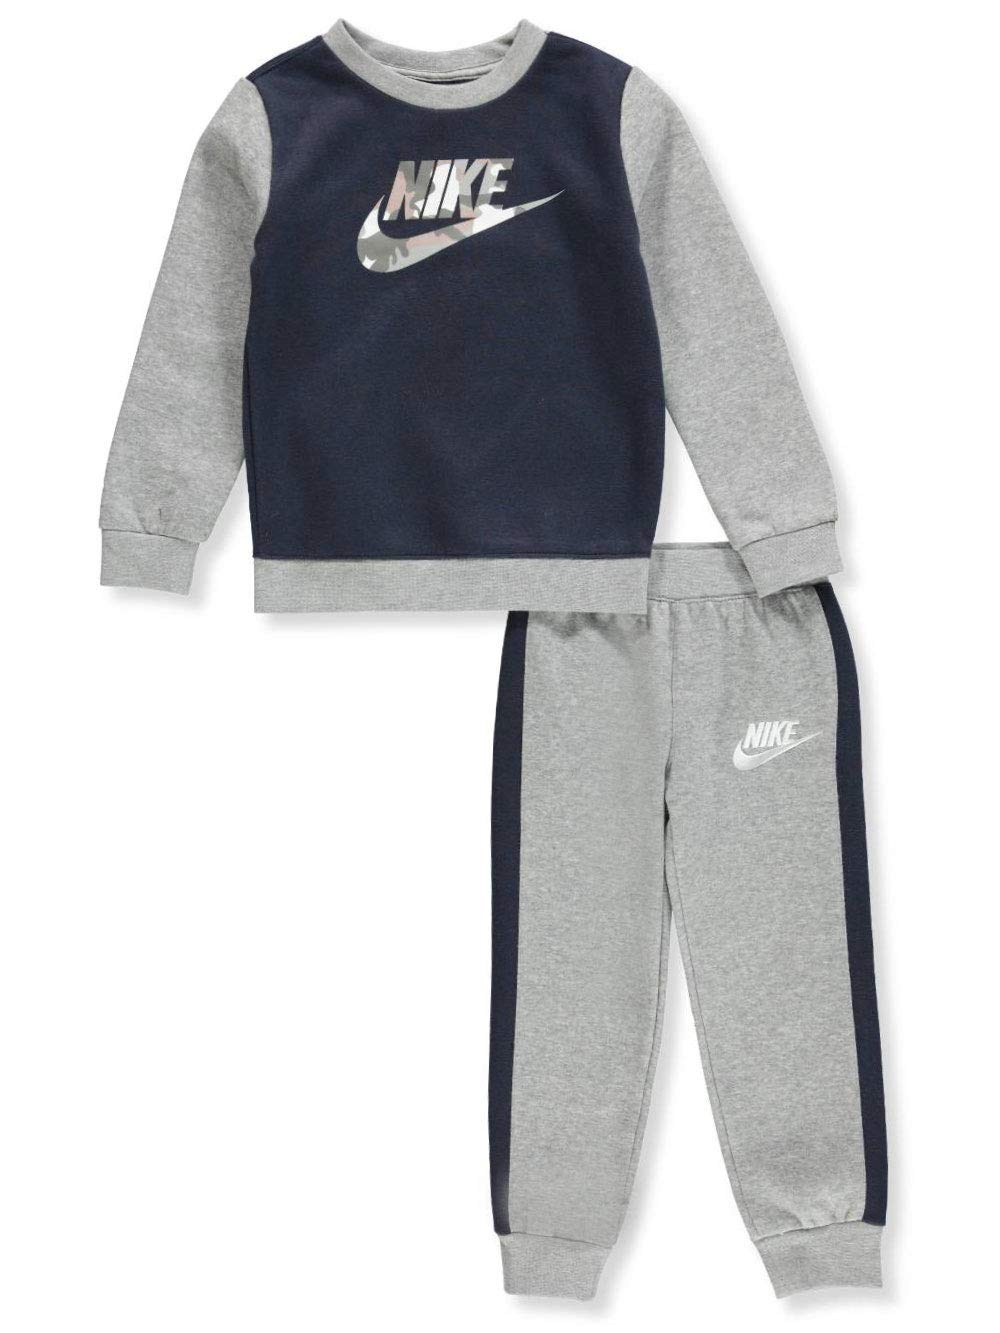 Nike Boys' 2-Piece Pants Set Outfit - Dark Gray Heather, 2t